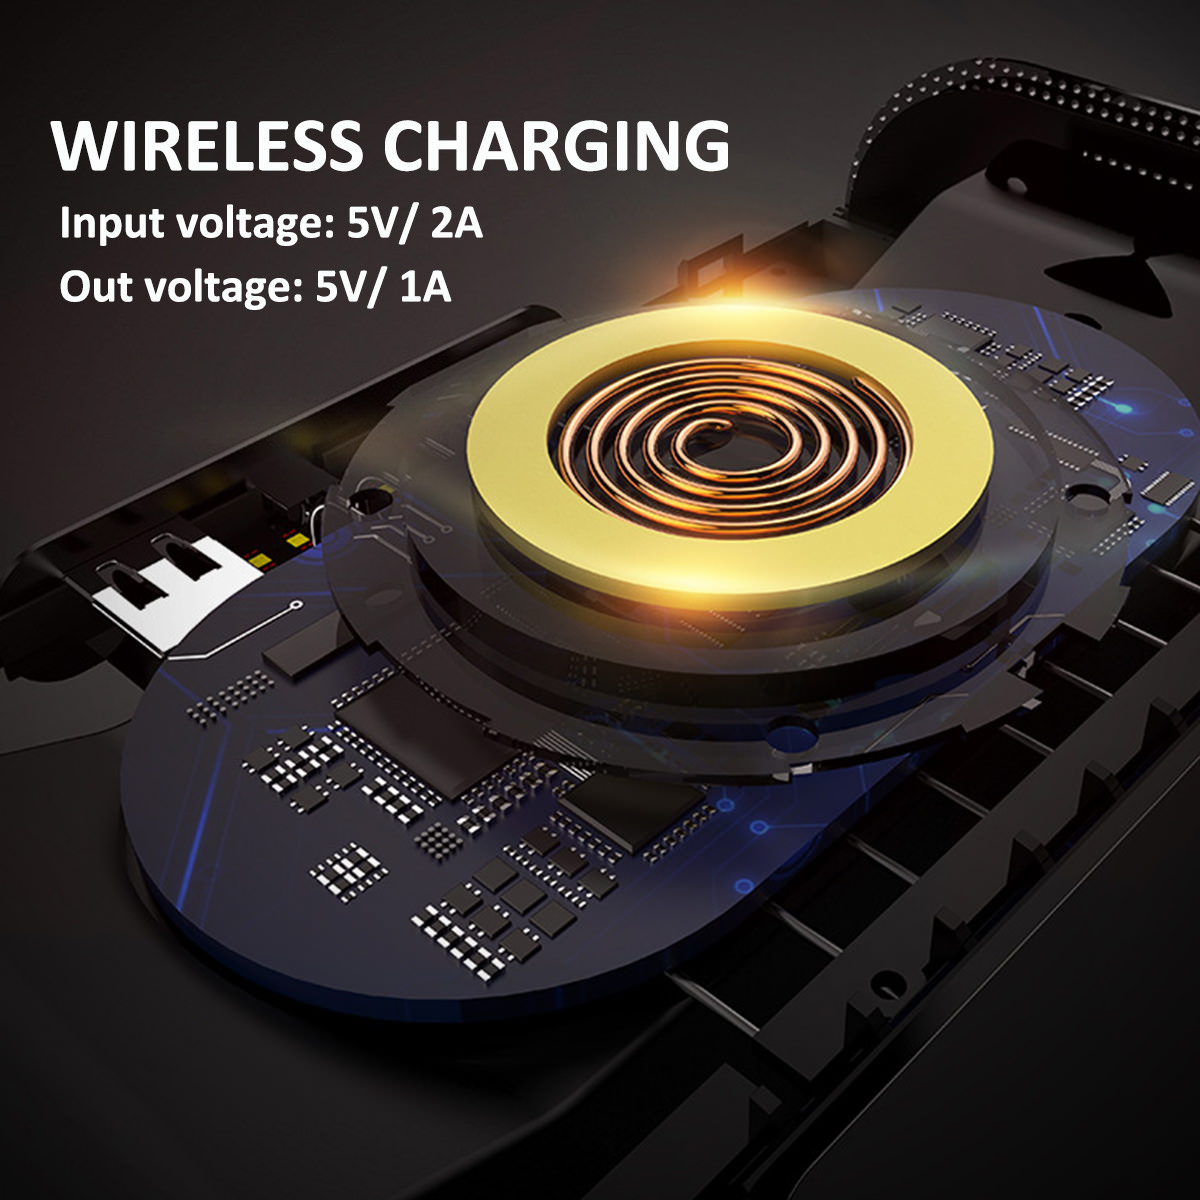 3 in 1 portable wireless charger/bluetooth speaker/power bank for sale